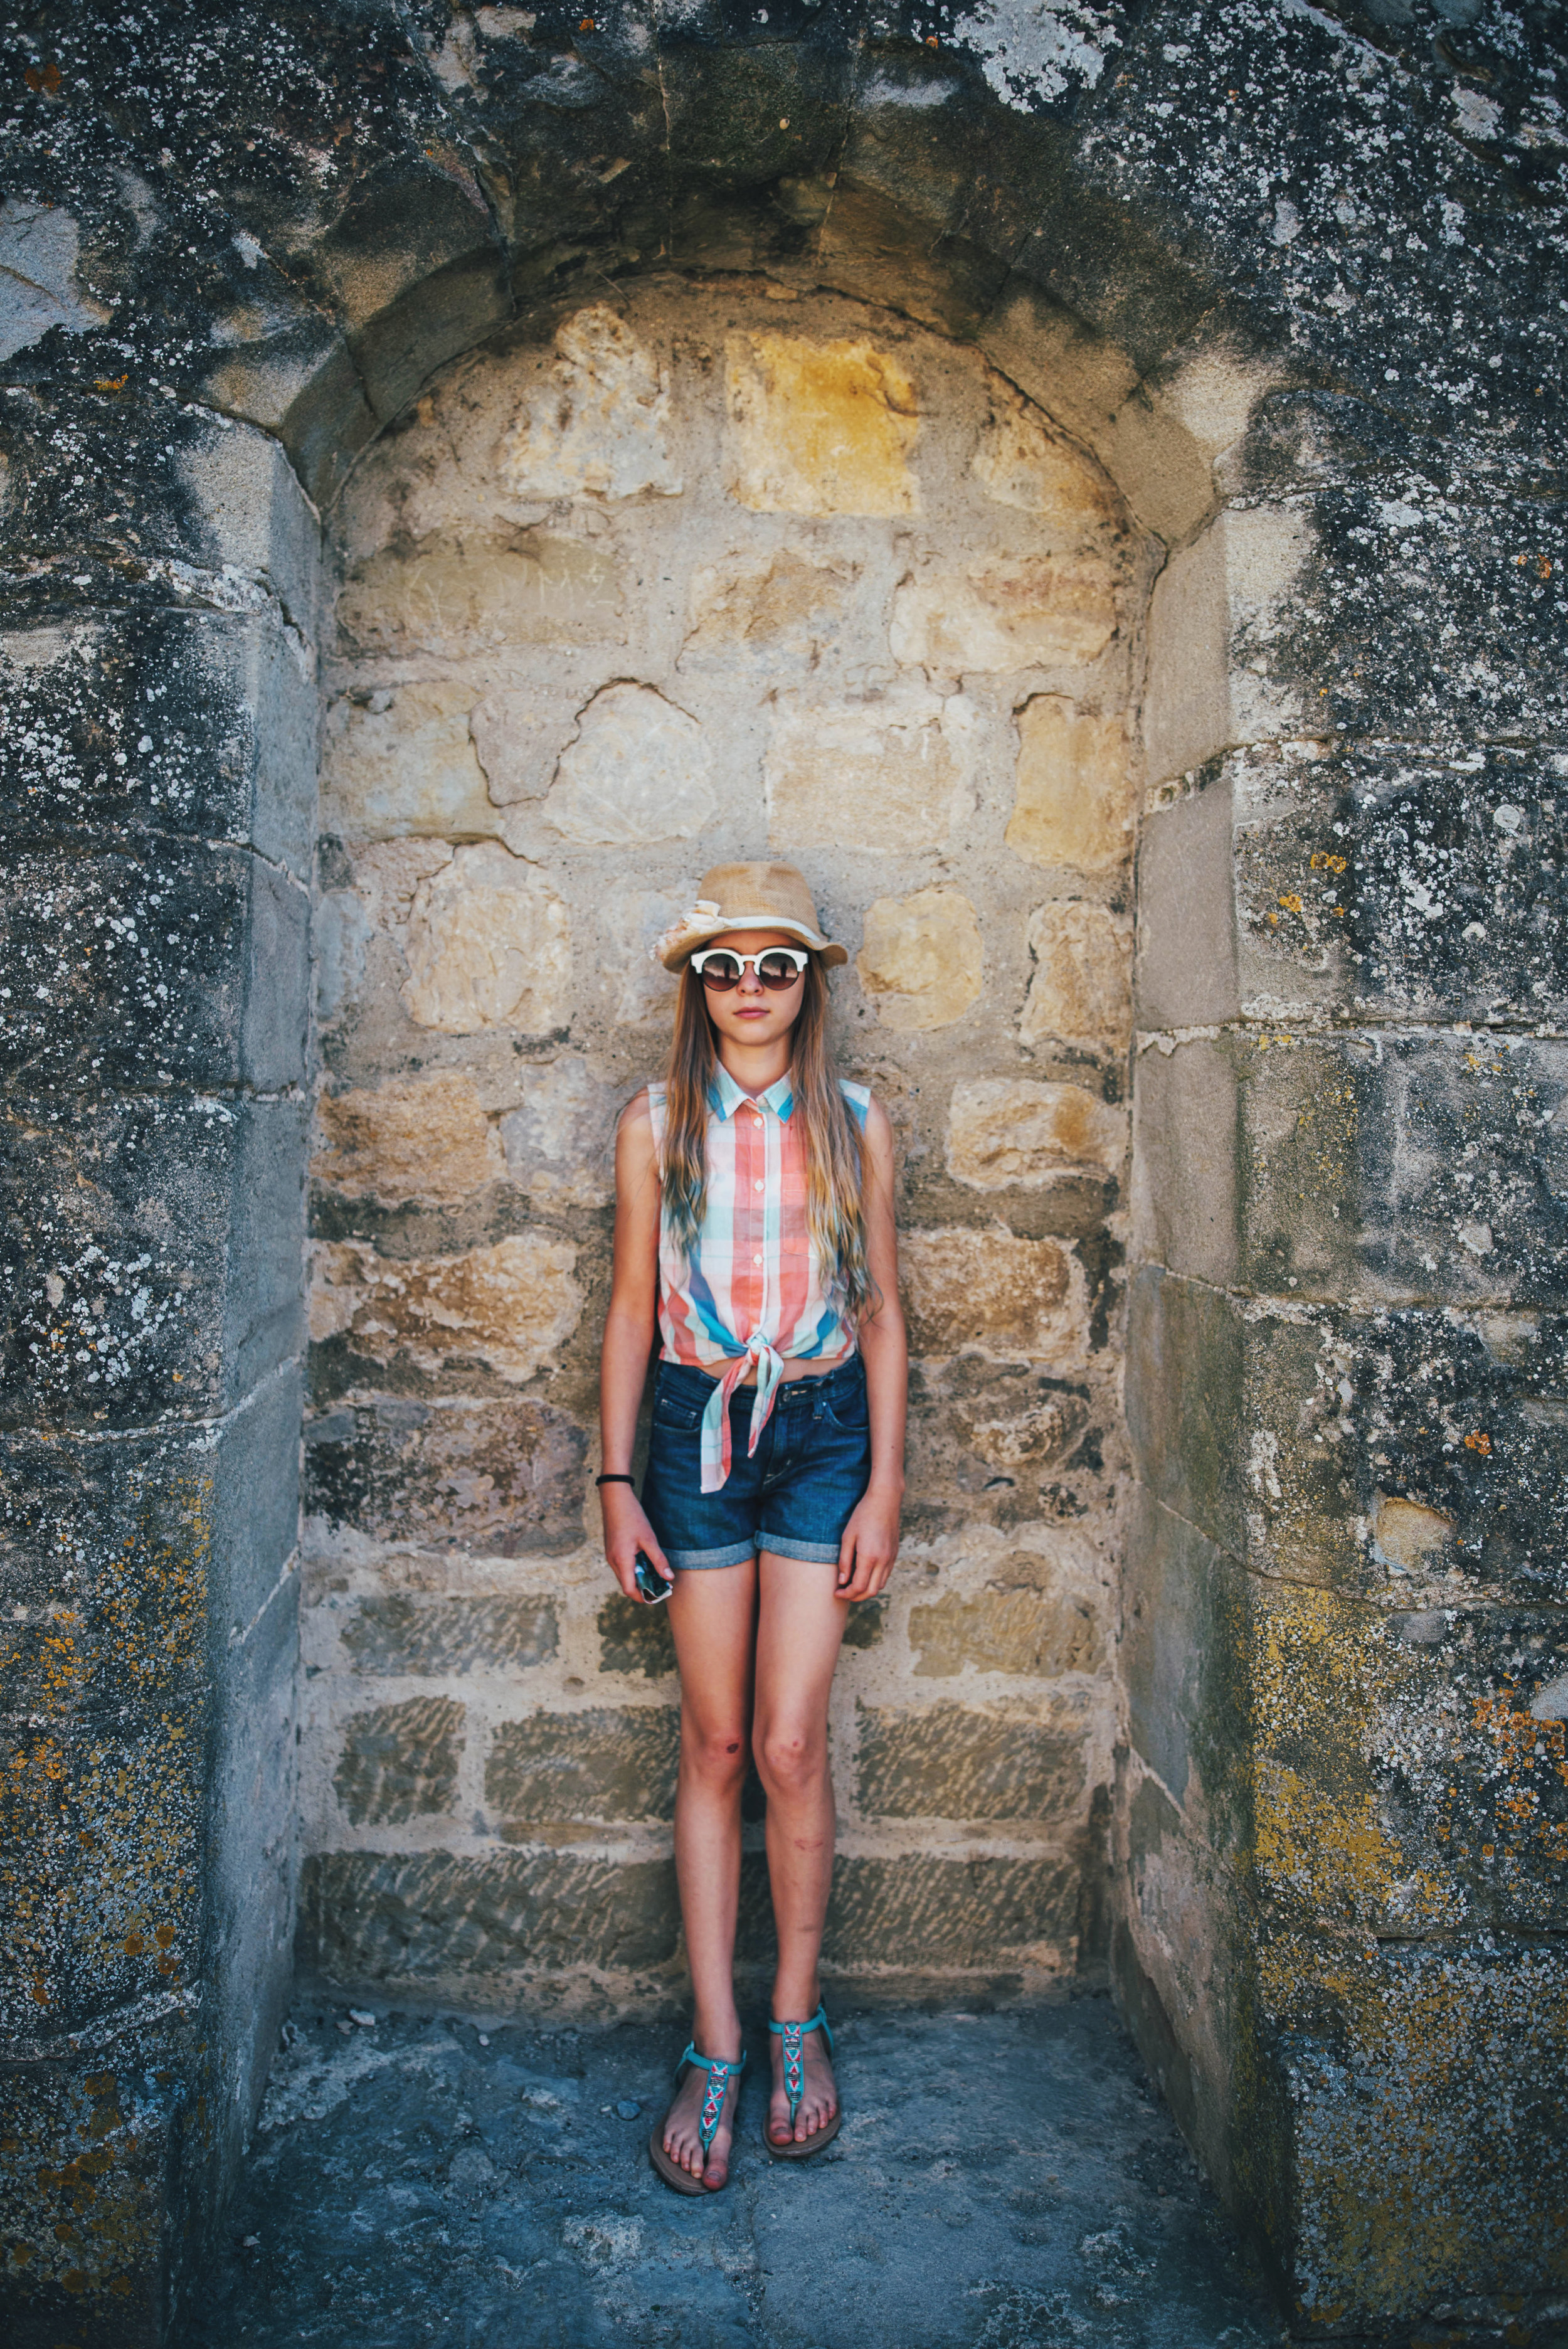 Young girl stands in niche at Carcassonne Citadel Essex UK Documentary Portrait Photographer